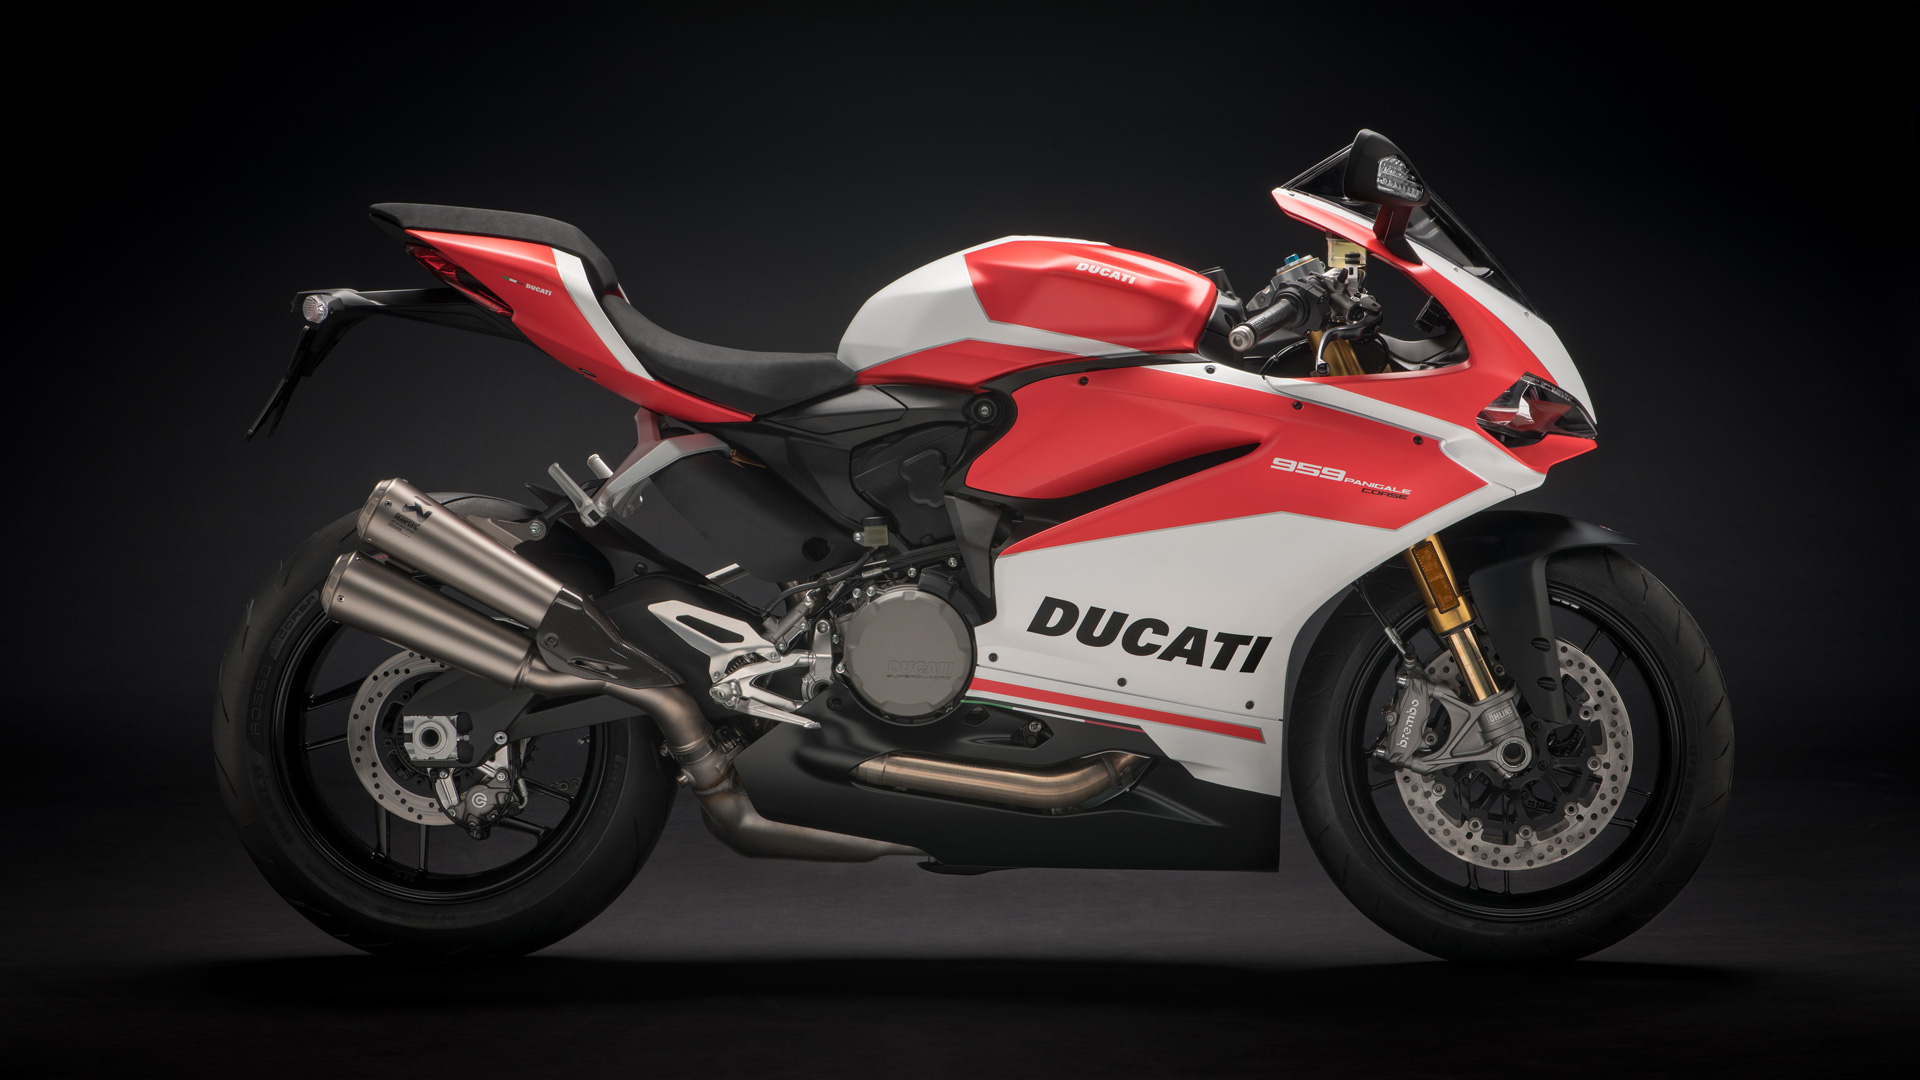 Panigale-959Corse-MY18-Red-44-Slider-Gallery-1920×1080